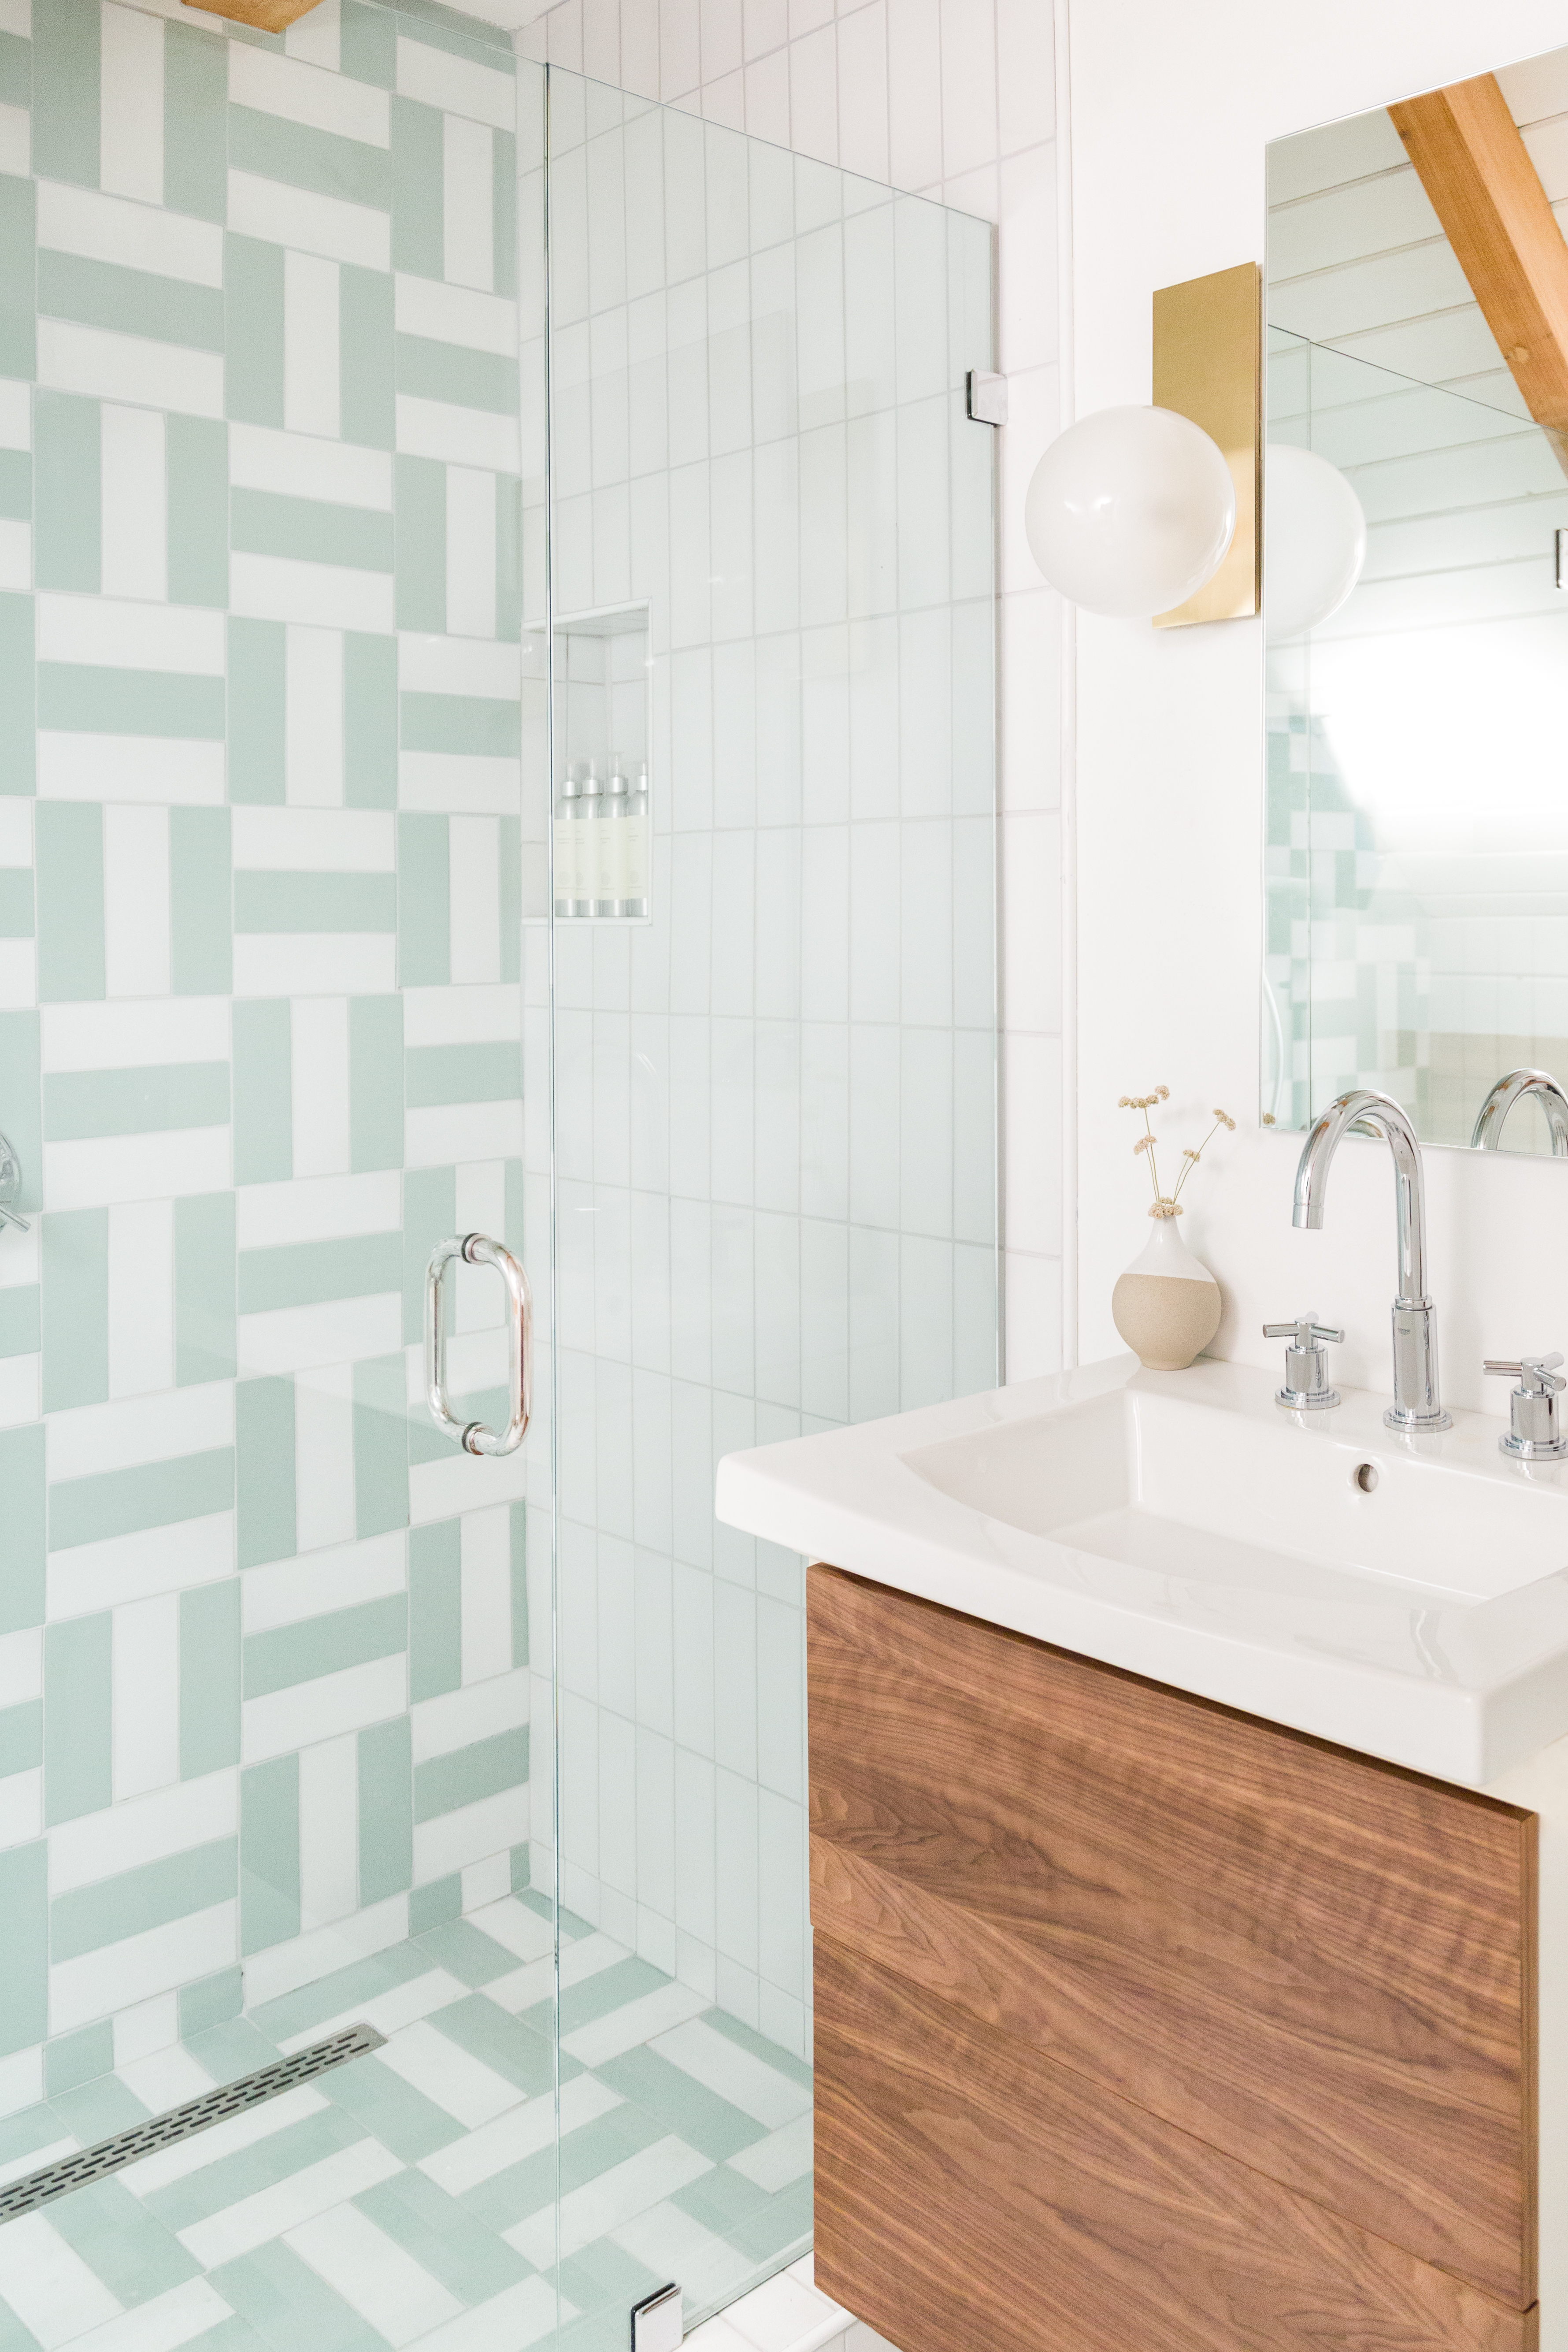 3x9 tiles set in a parquet pattern in Daisy and Sea Glass